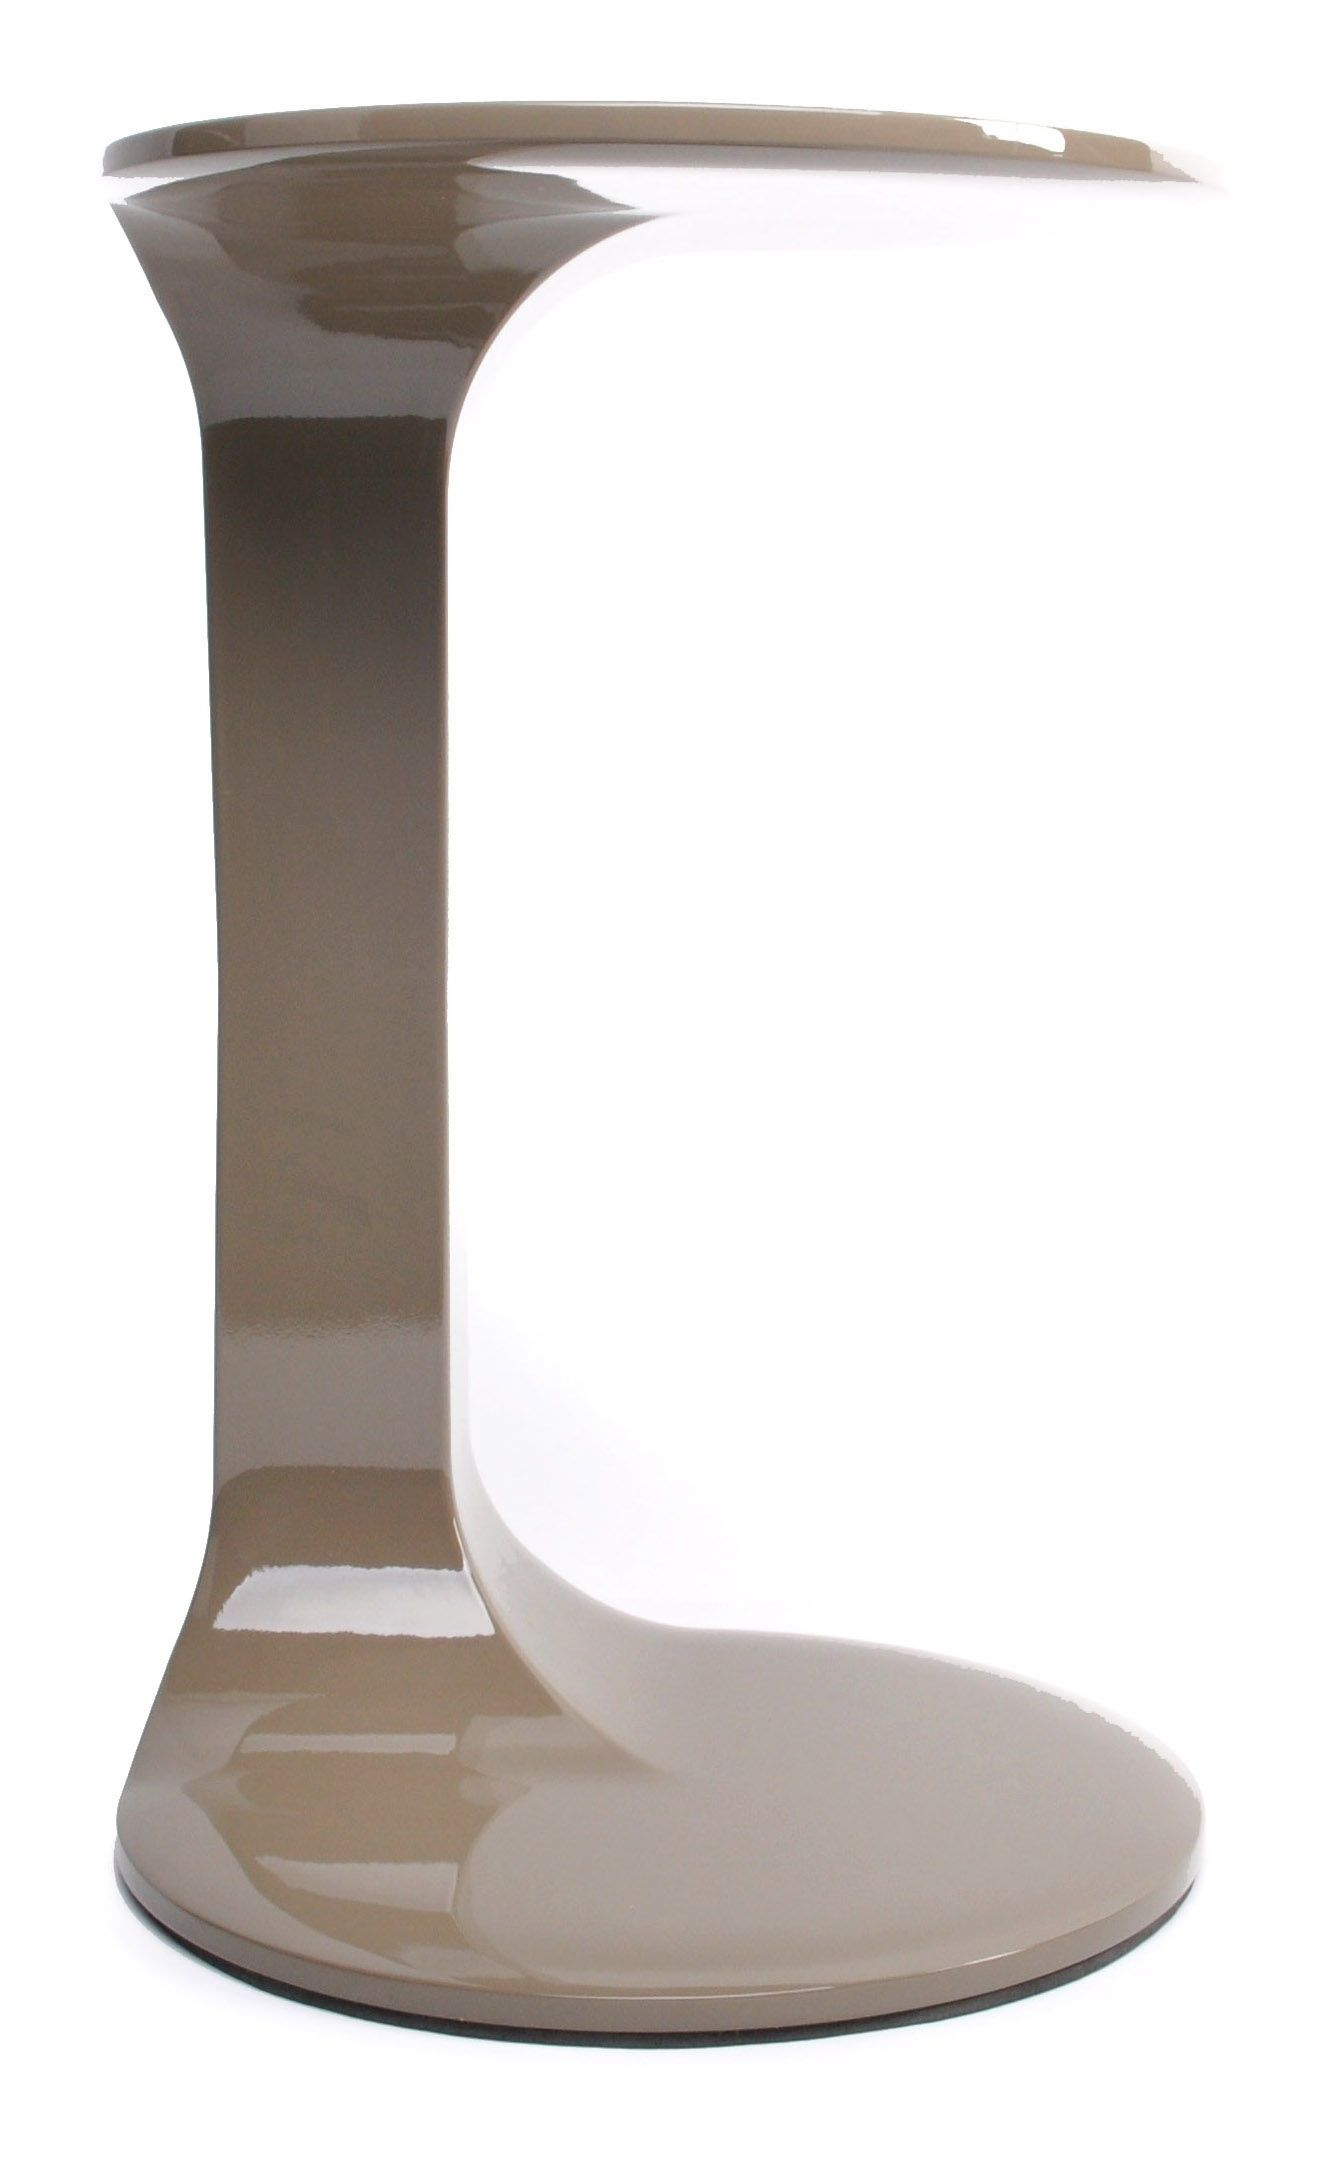 Gueridon Olee Xl Boom Marron Beige Made In Design Bout De Canape Table D Appoint Support Ordinateur Portable